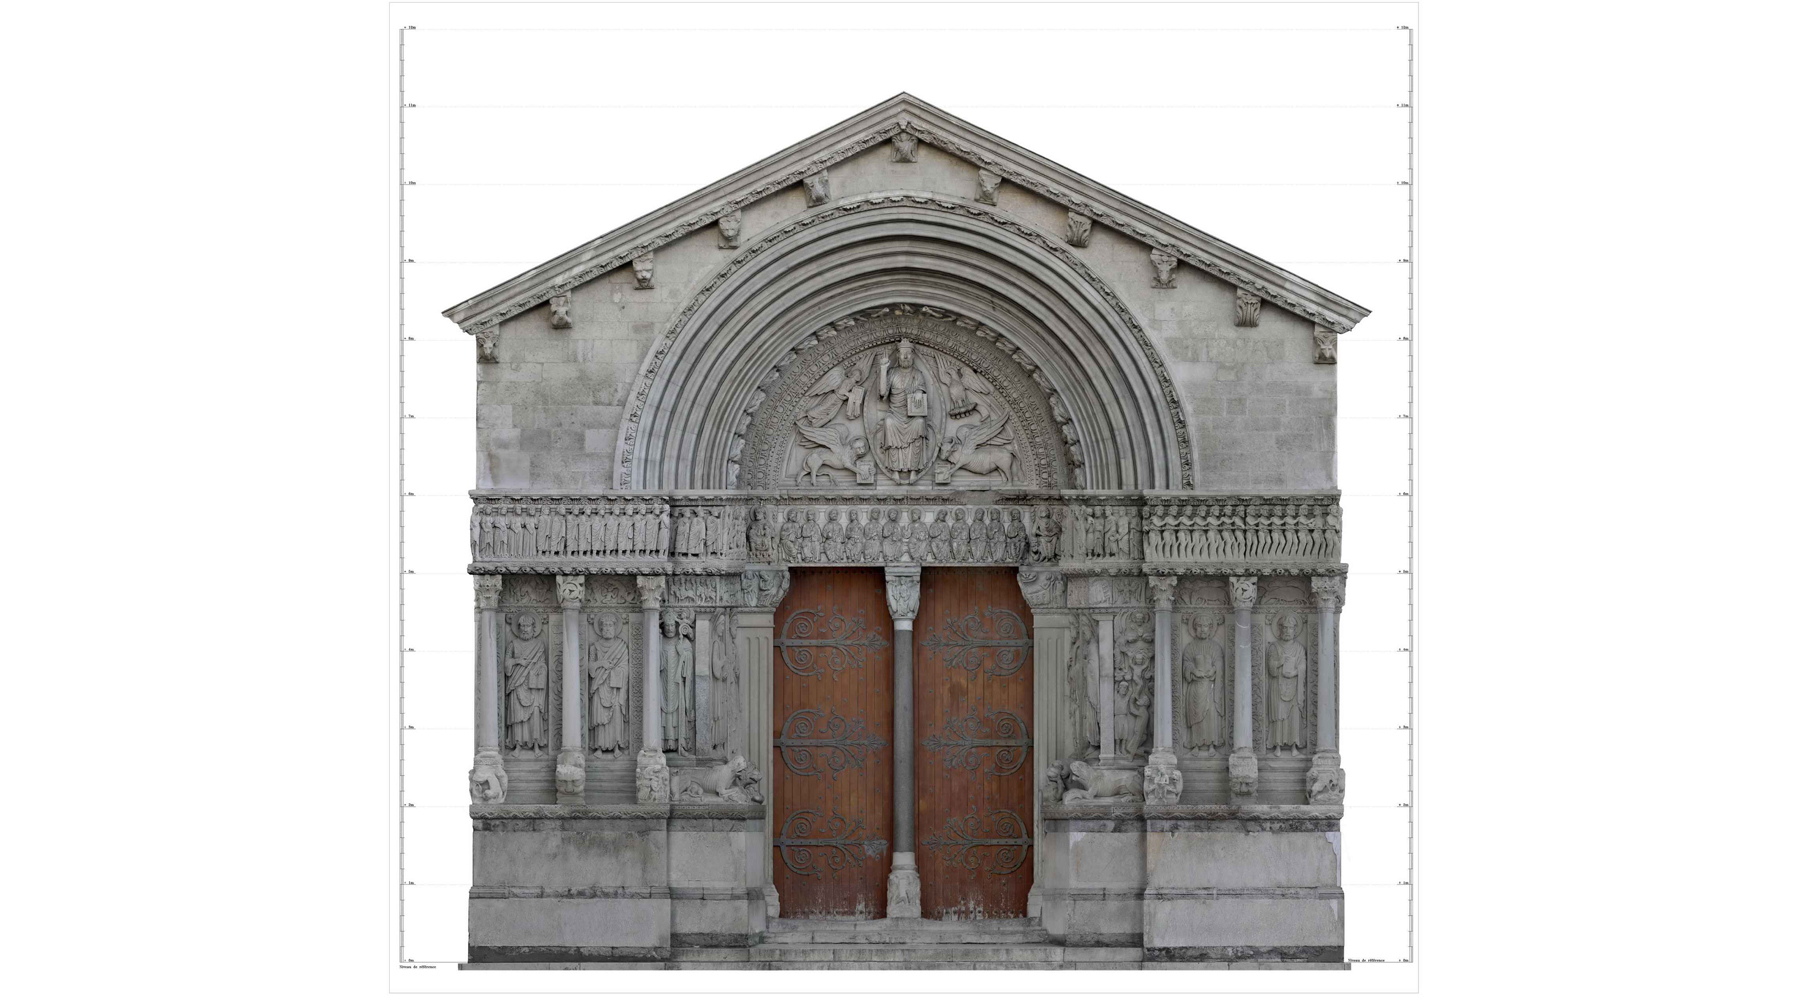 20 The door of the Saint-Trophime church, Arles - Orthophotograph